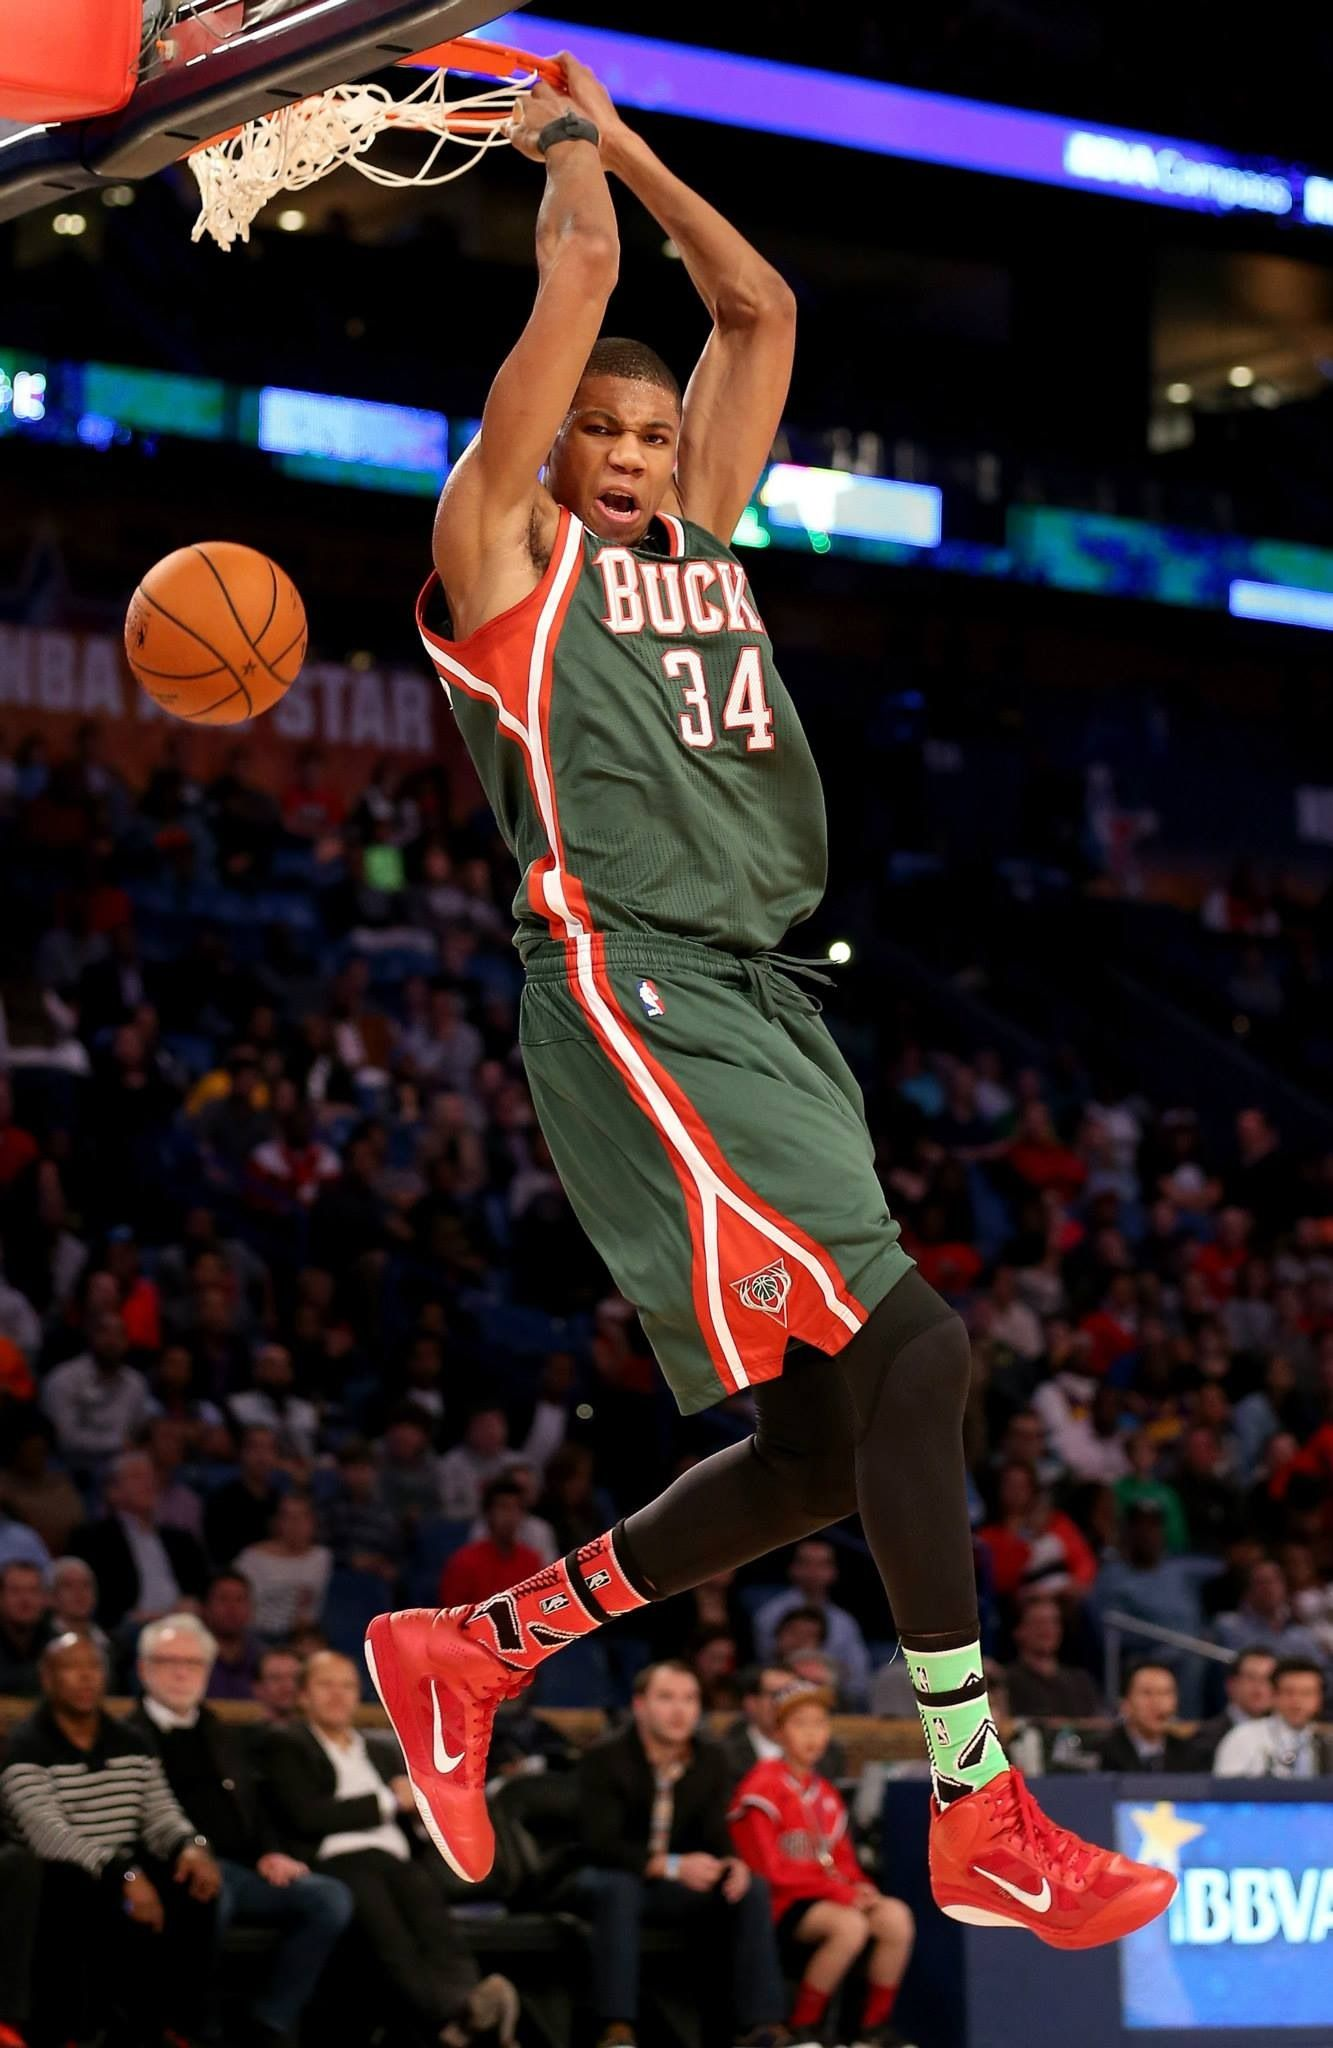 Giannis Antetokounmpo showing his hops in BBVA Rising